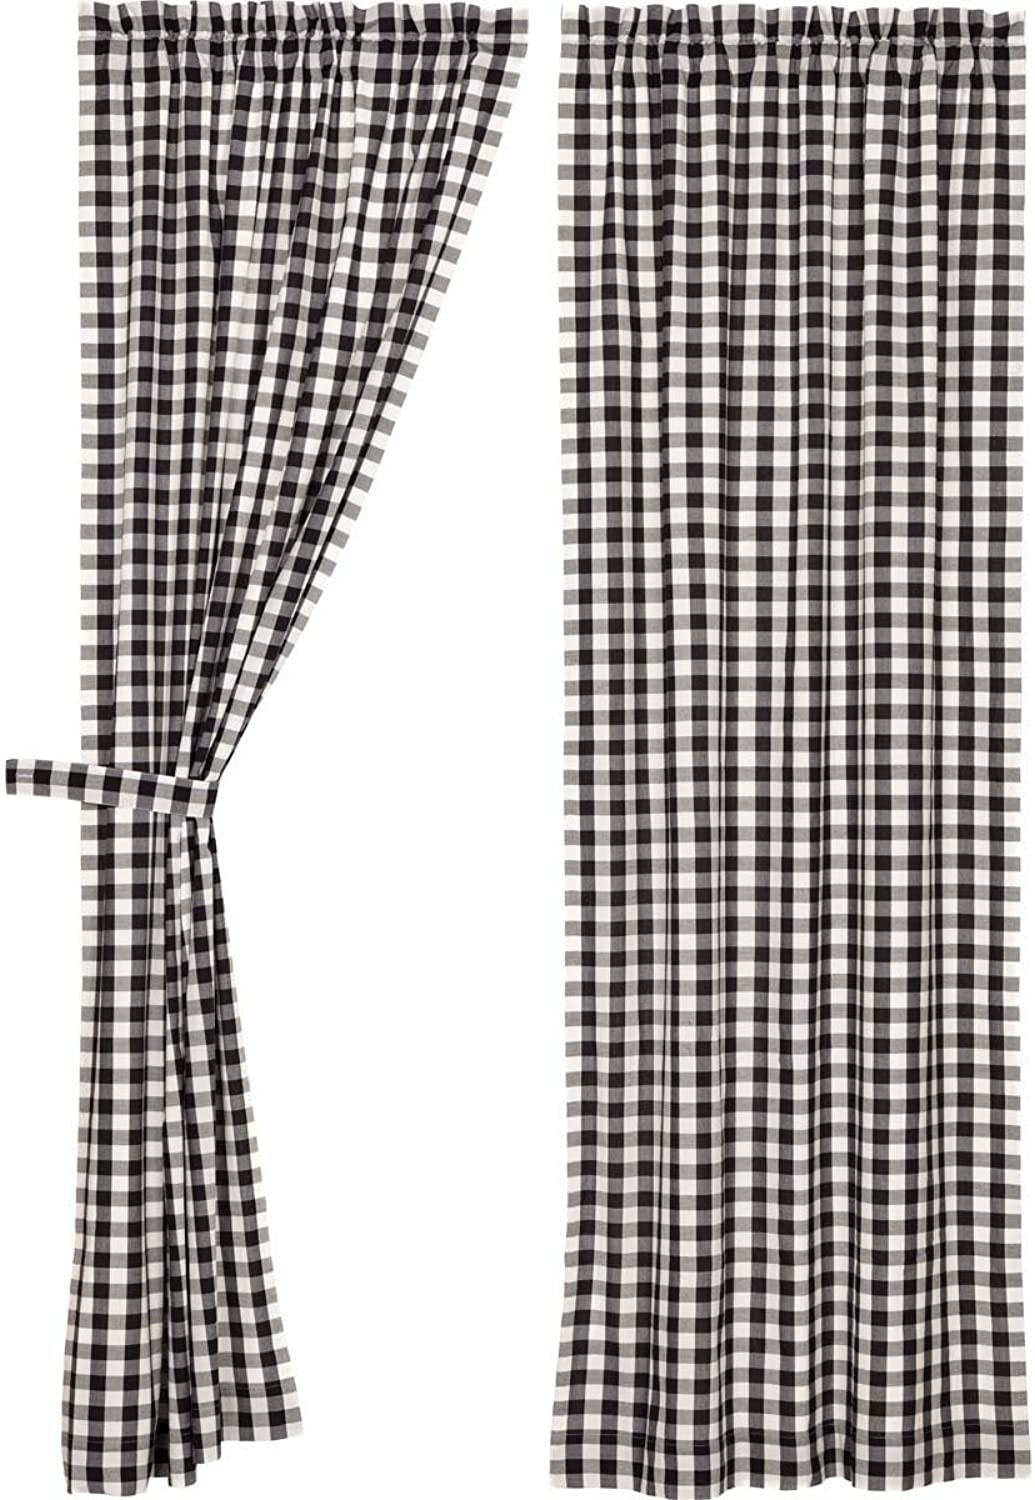 VHC Brands Classic Country Farmhouse Window Annie Buffalo Check White Lined Curtain Panel Pair, Black